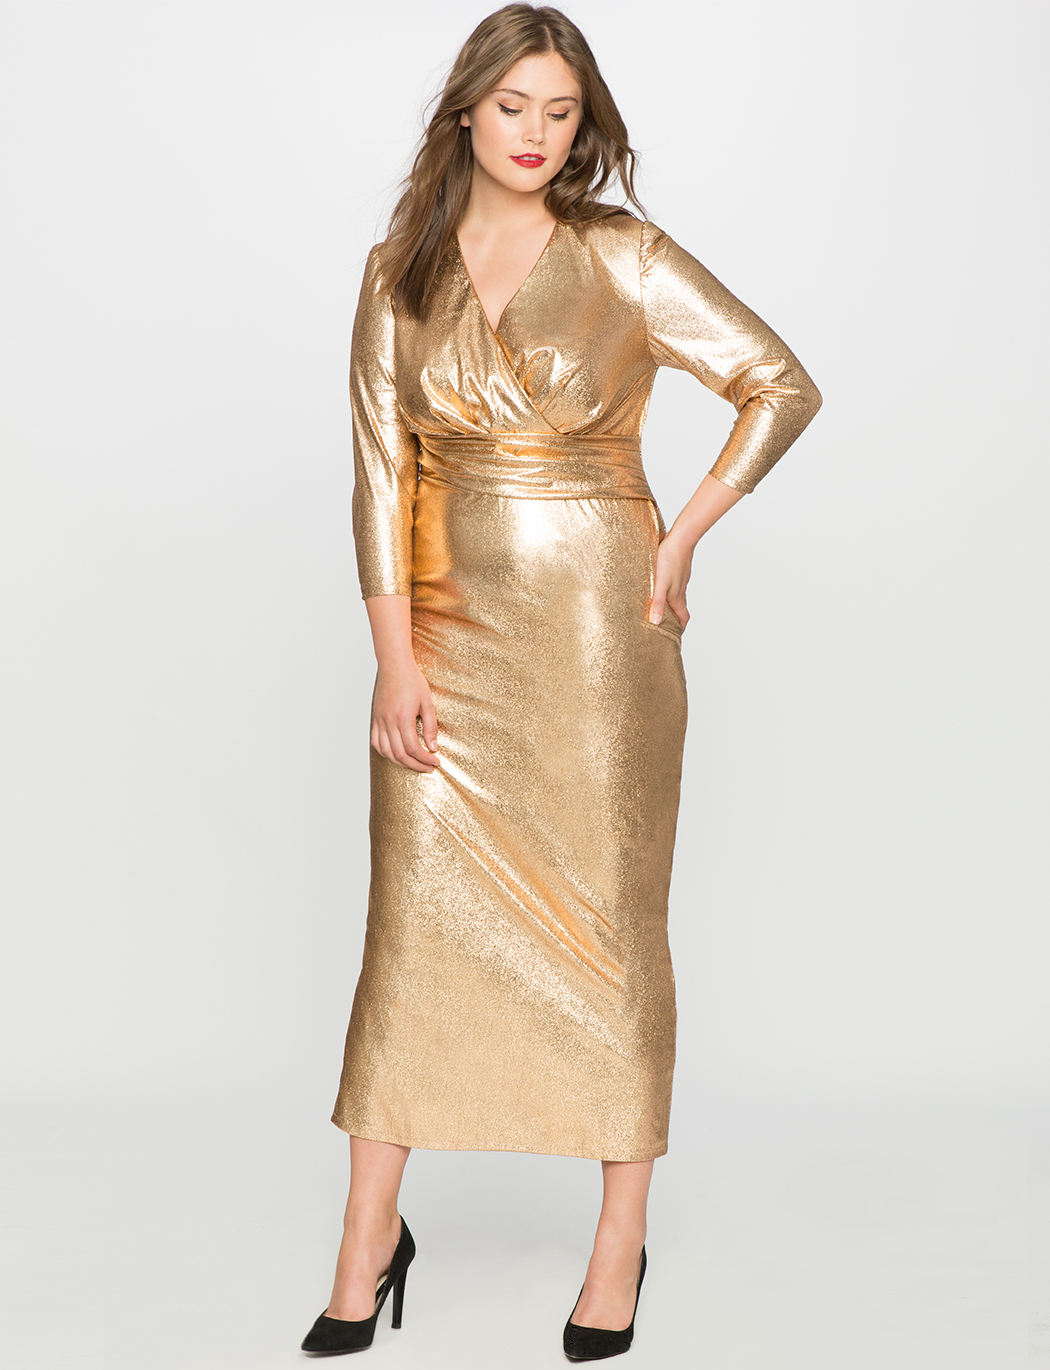 Studio Metallic Textured Wrap Dress | Women\'s Plus Size Dresses | ELOQUII